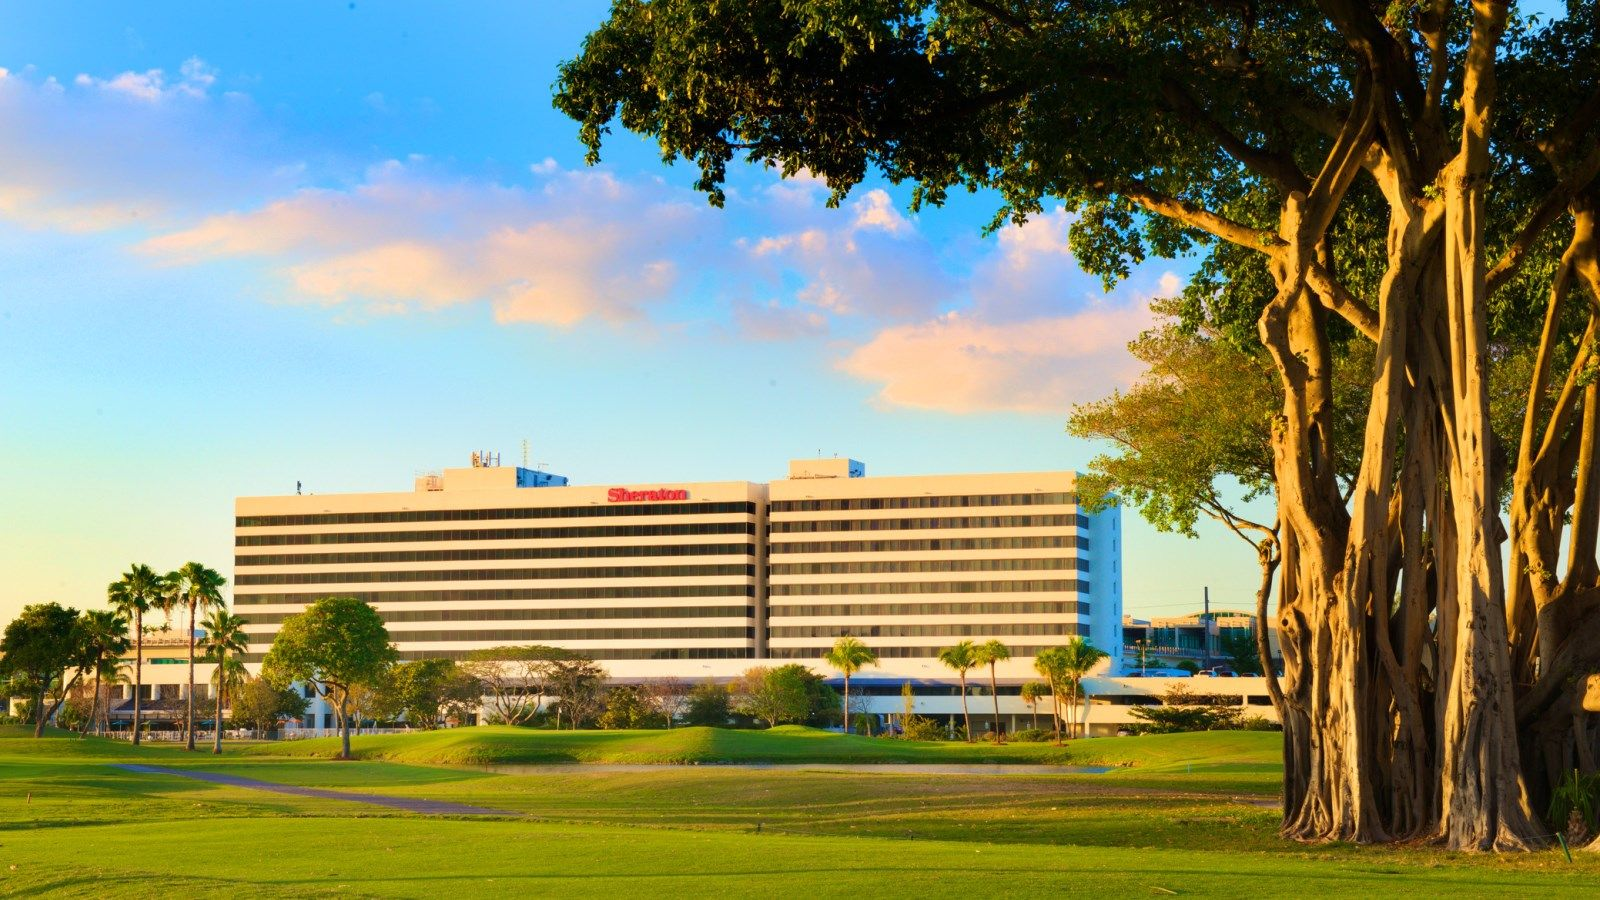 Hotels And Motels In Miami Florida